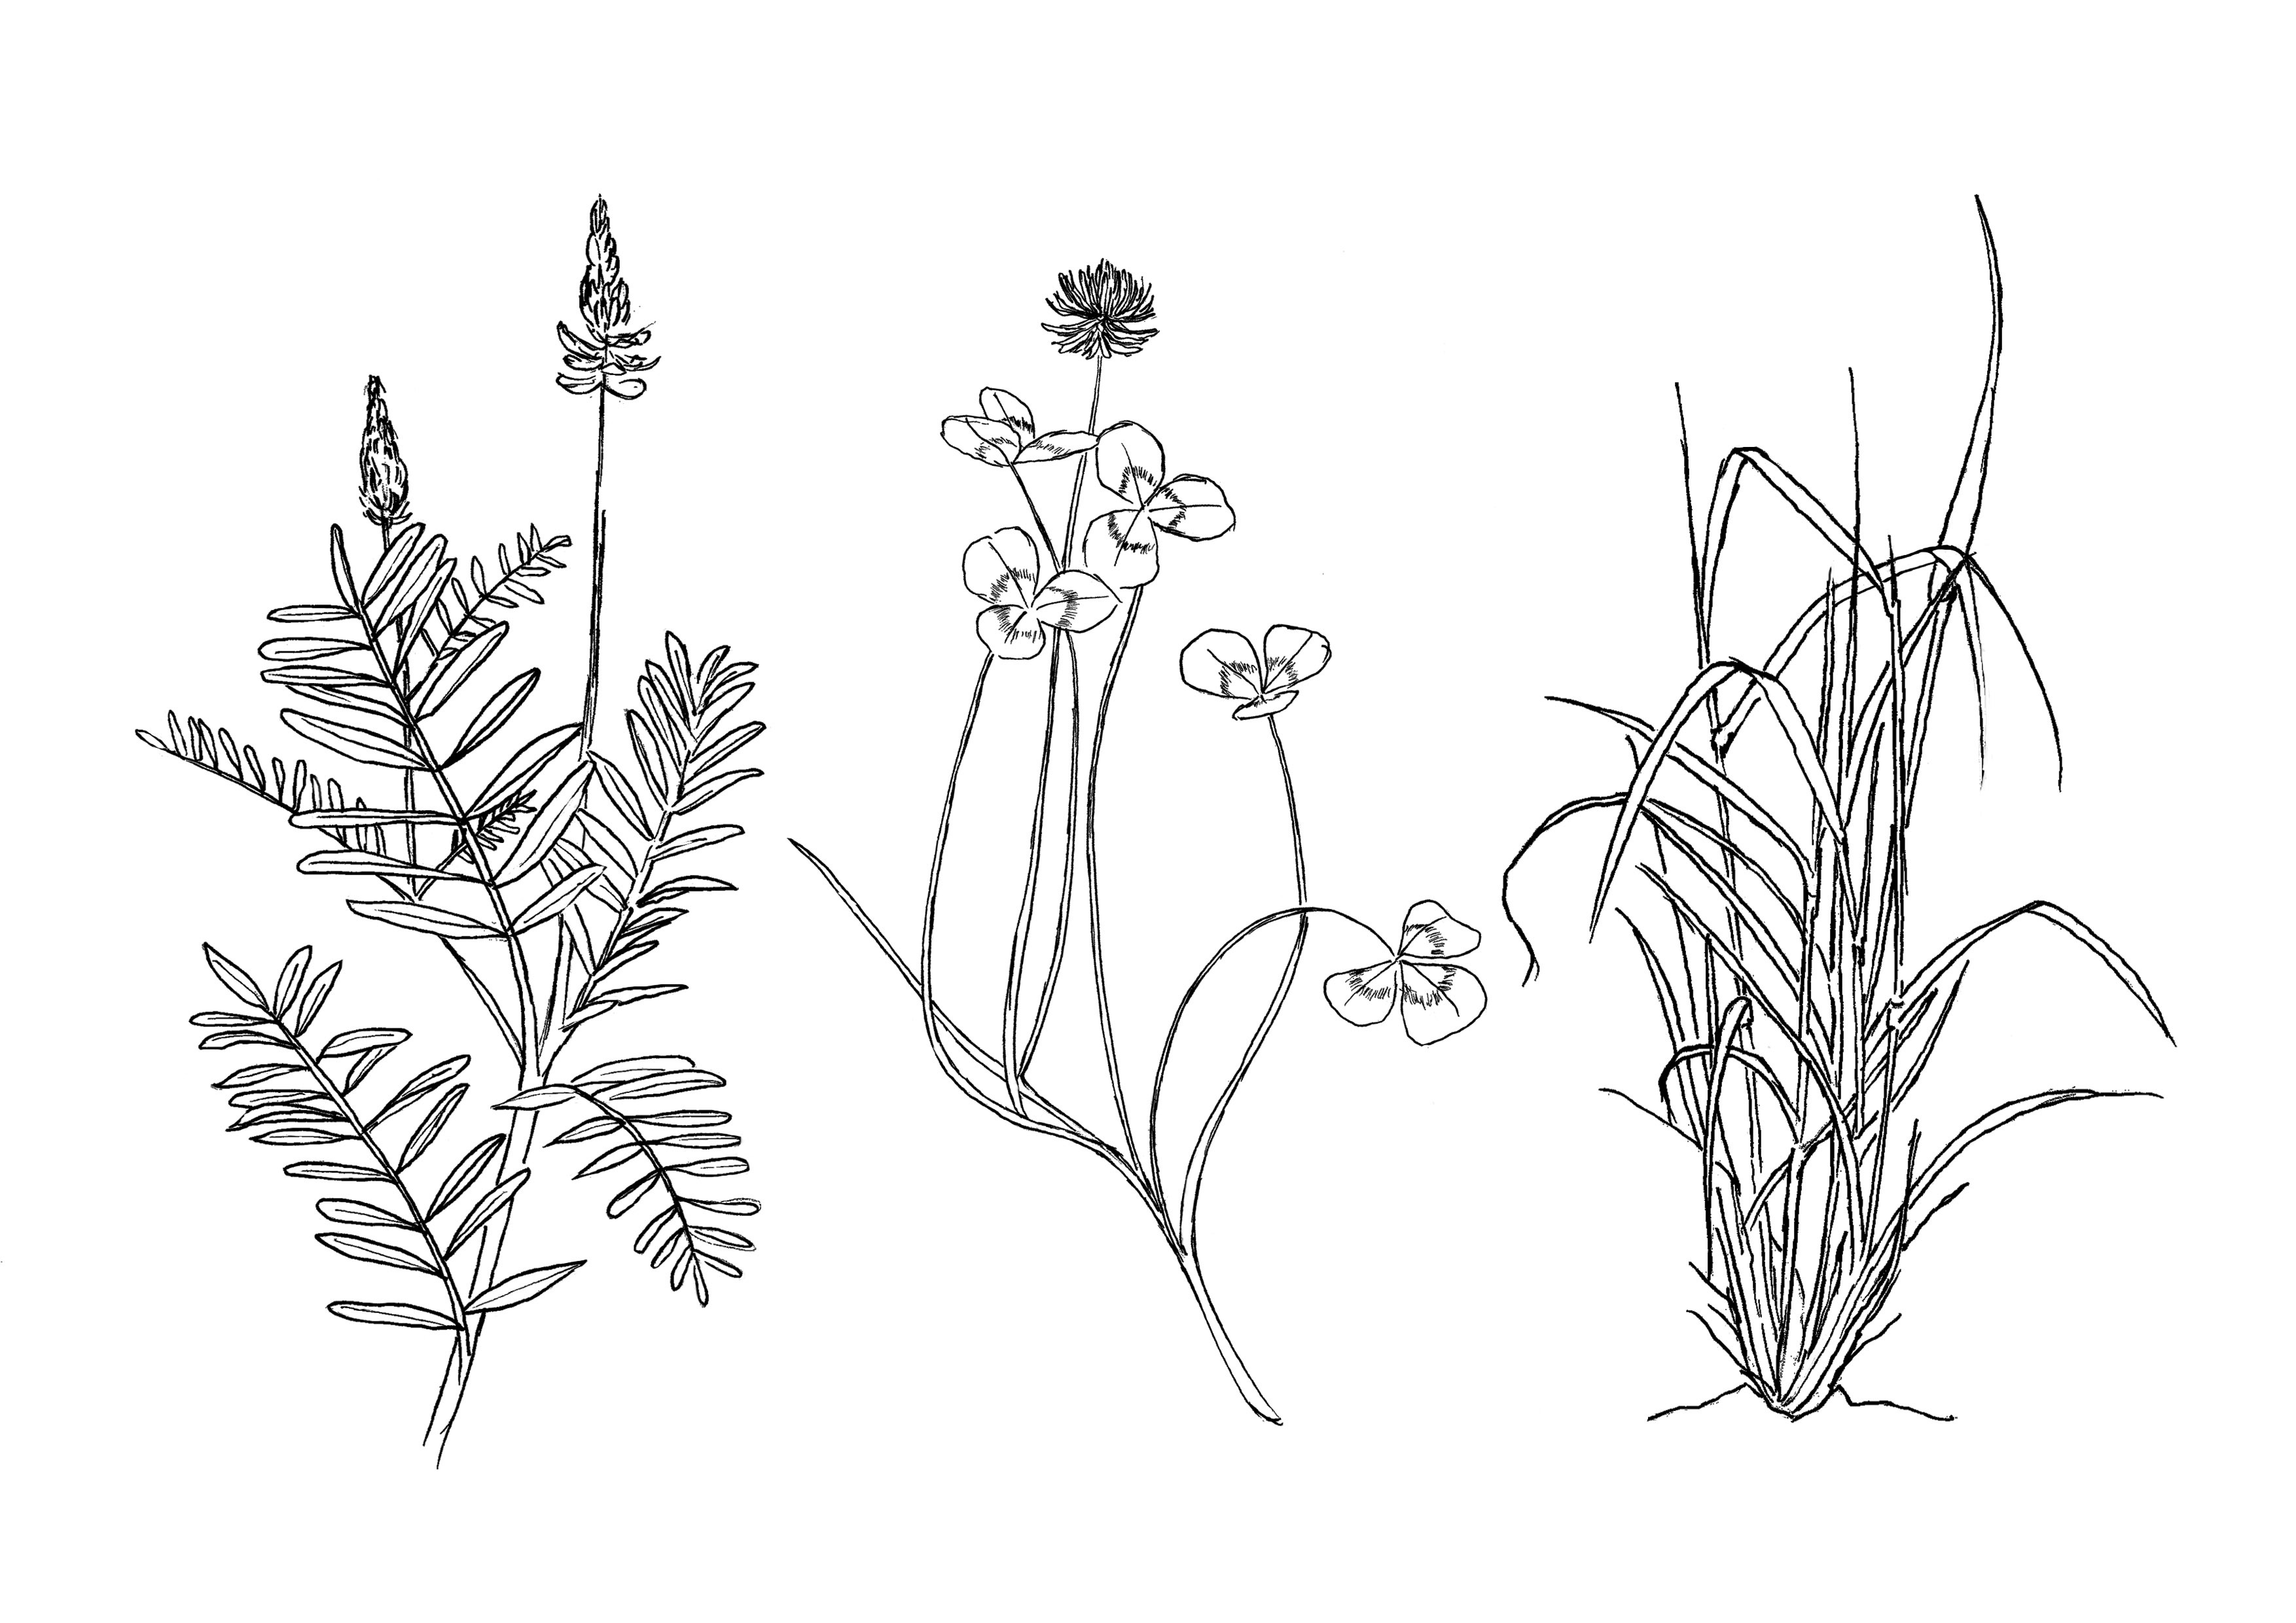 Line drawings of sainfoin, clover and ryegrass